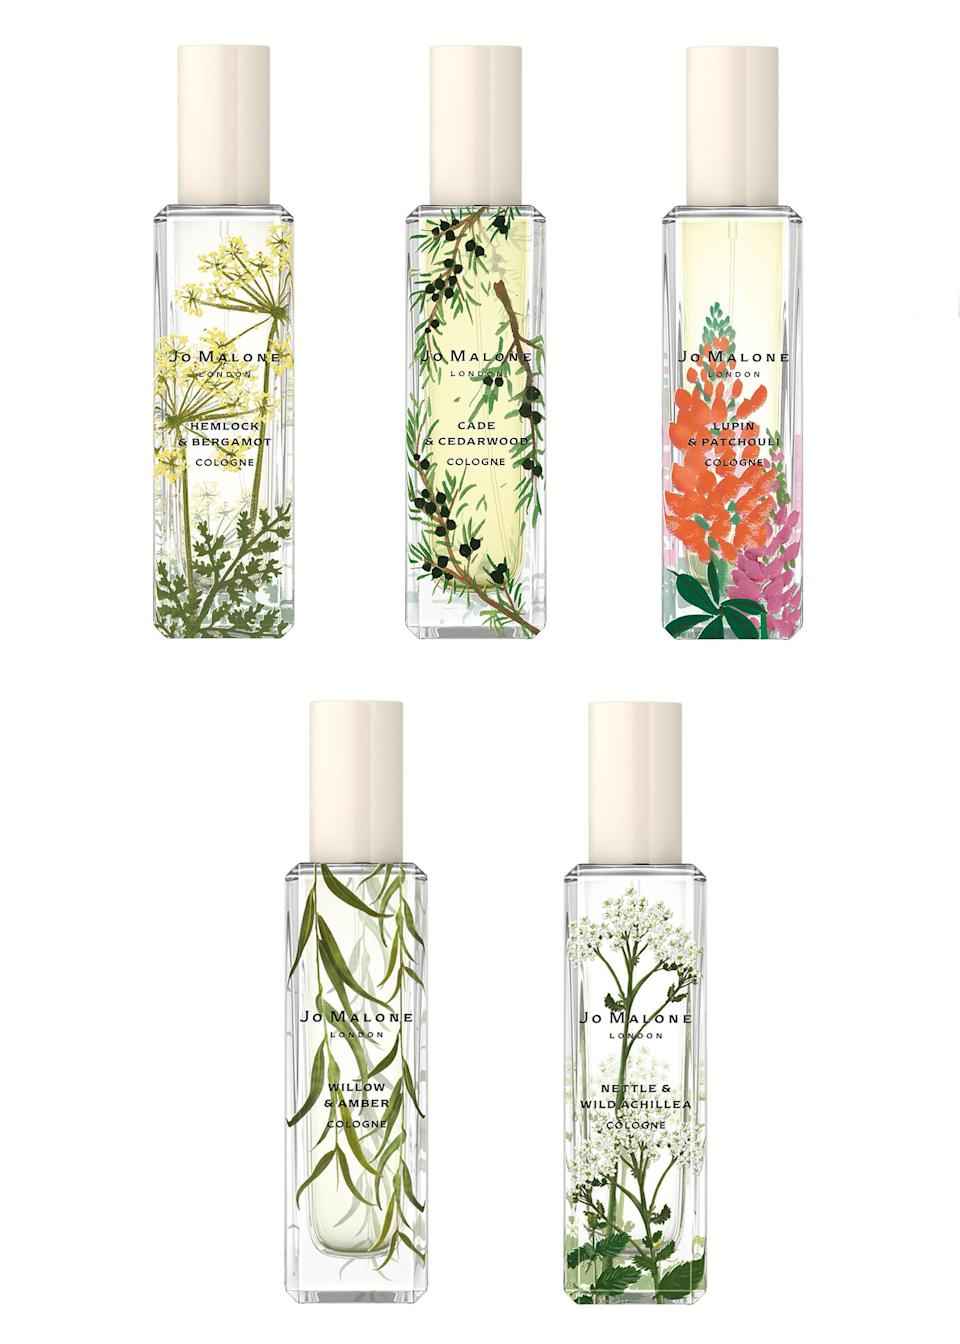 """<p>Nothing smells like spring more than Jo Malone's newest drop with five fresh fragrances inspired by wild flowers. If not for you, they're sure to make the perfect Mother's Day gift. <a href=""""https://www.jomalone.co.uk/jo-malone-london-wildflower-weeds"""" rel=""""nofollow noopener"""" target=""""_blank"""" data-ylk=""""slk:Shop now"""" class=""""link rapid-noclick-resp""""><em>Shop now</em></a>. </p>"""